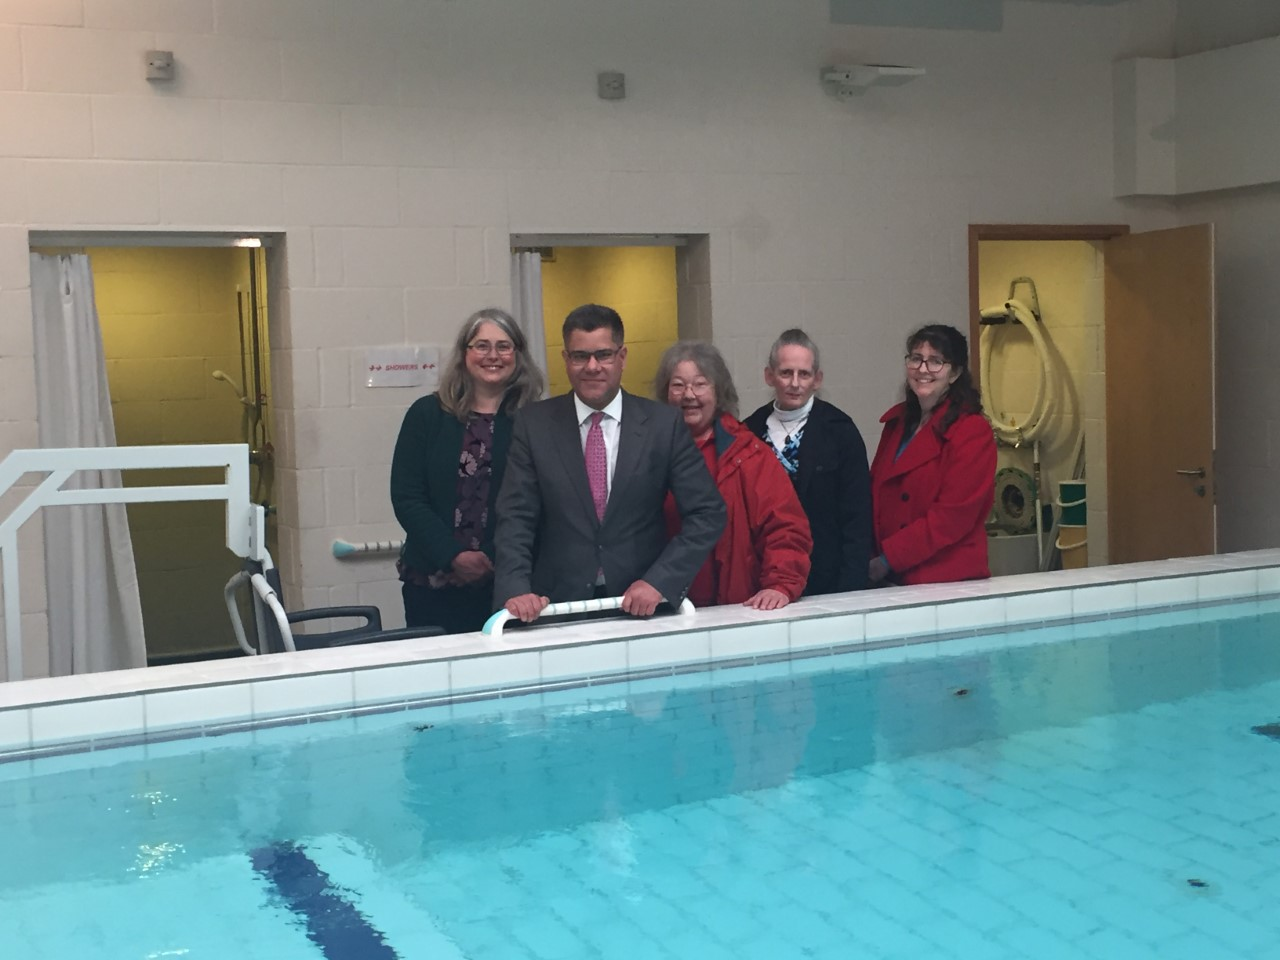 Alok Sharma MP with Stakeholder Group members Ramona Bridgman, Angie Burnish, Deborah Catherall and Julie Monahan at the Hydrotherapy Pool